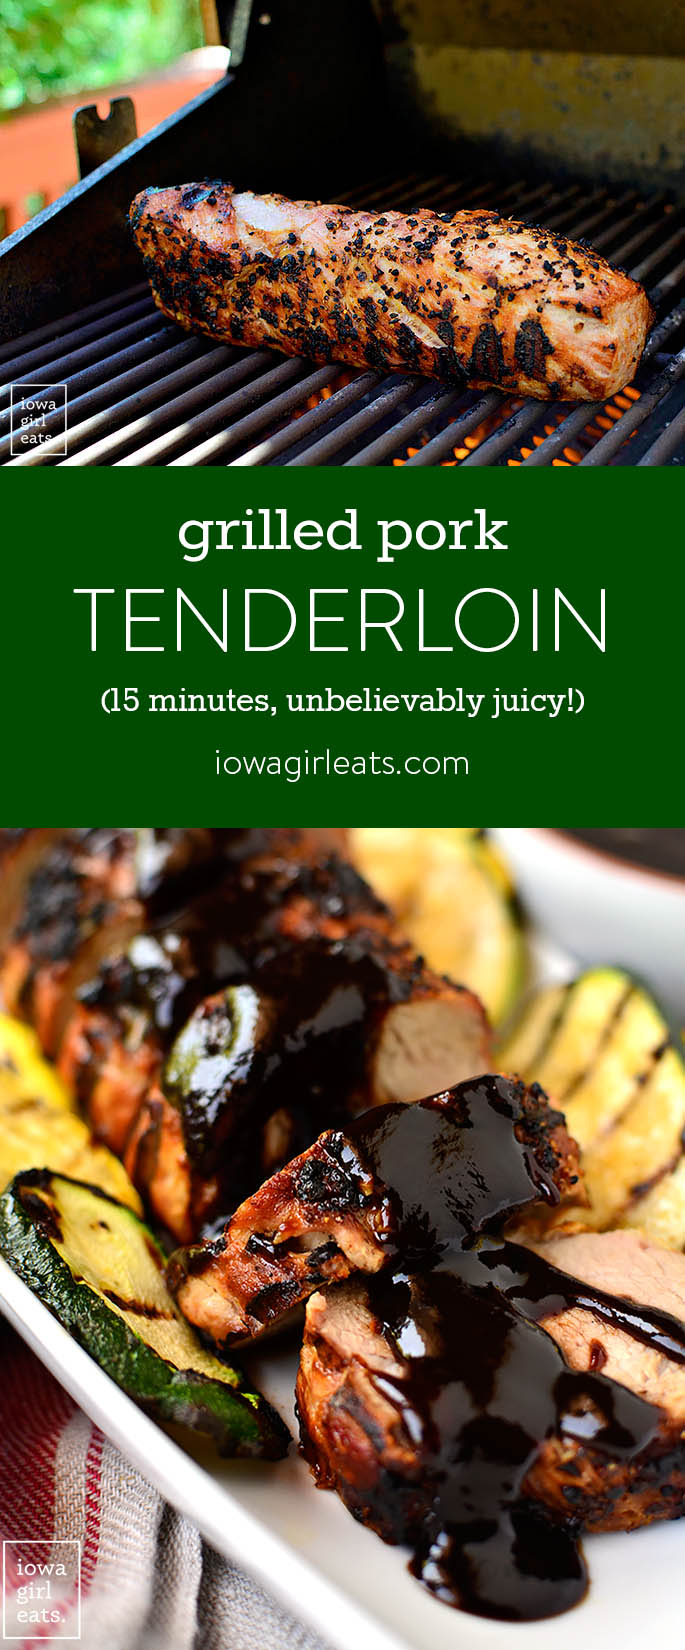 I'm sharing my method for the most unbelievably juicy grilled pork tenderloin, which cooks in under 15 minutes. A filling and healthy summer dinner! | iowagirleats.com